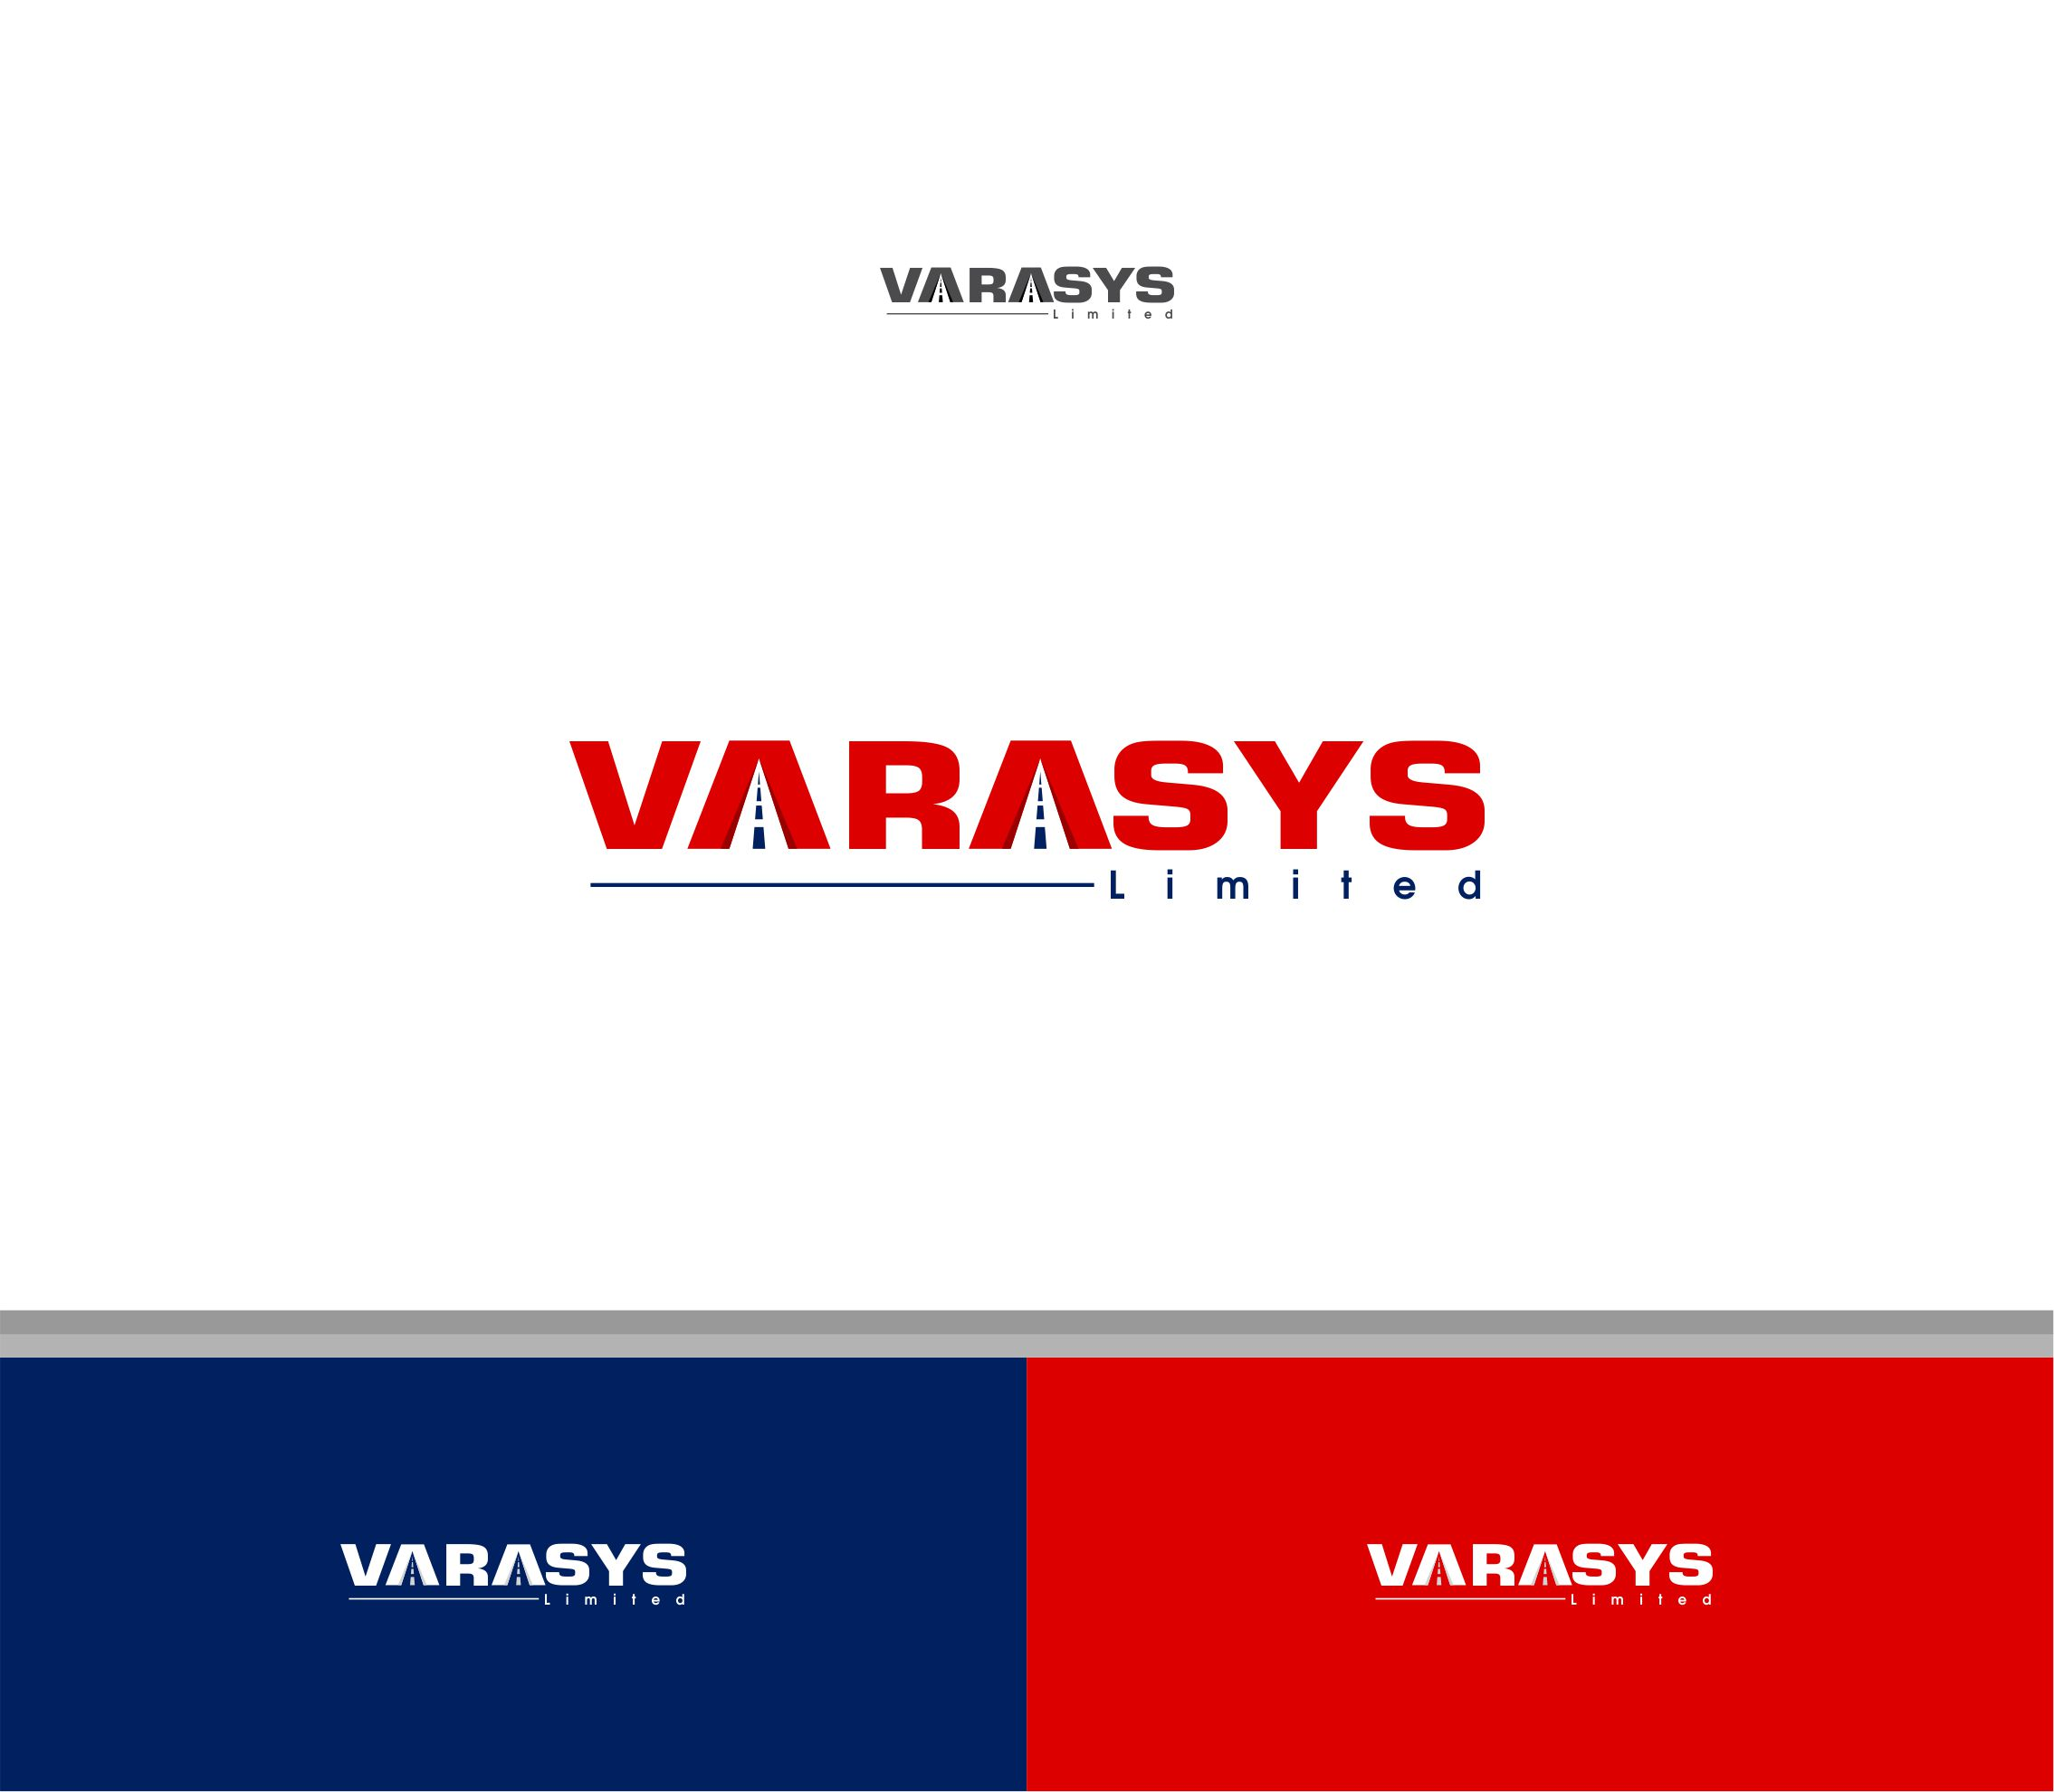 Logo Design by Raymond Garcia - Entry No. 70 in the Logo Design Contest Artistic Logo Design for VARASYS Limited.